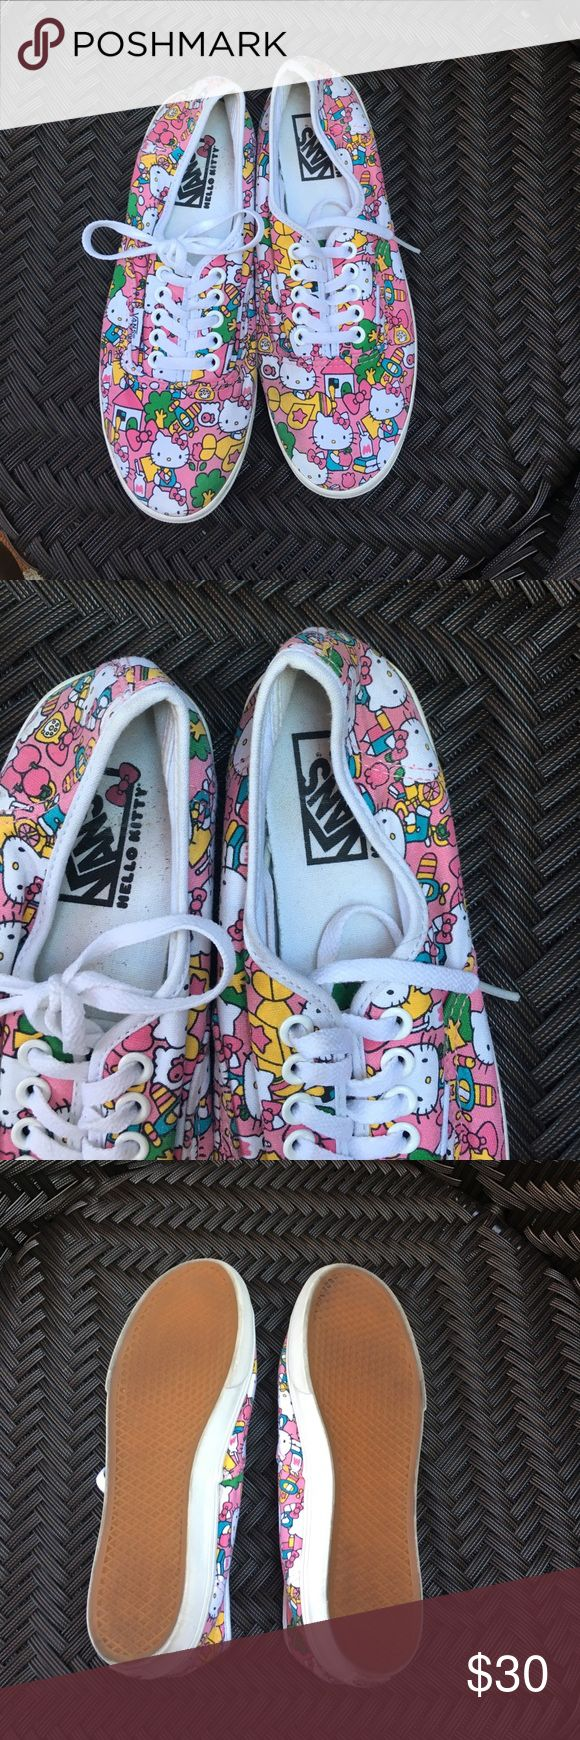 Hello kitty vans 6.5 Hello kitty pink vans size 6.5 worn once Vans Shoes Sneakers